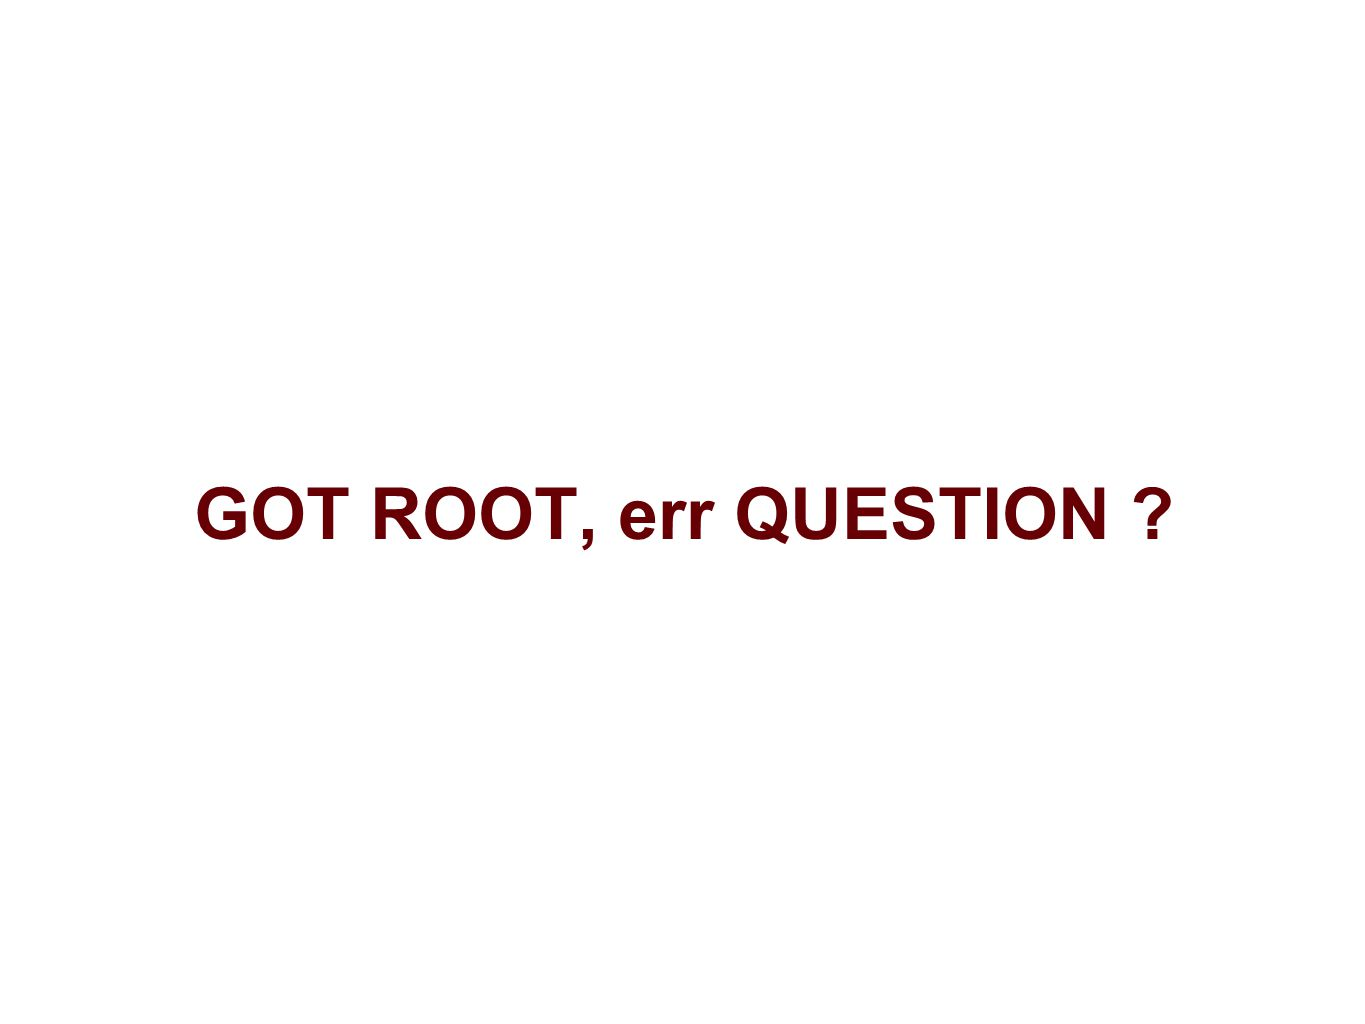 GOT ROOT, err QUESTION